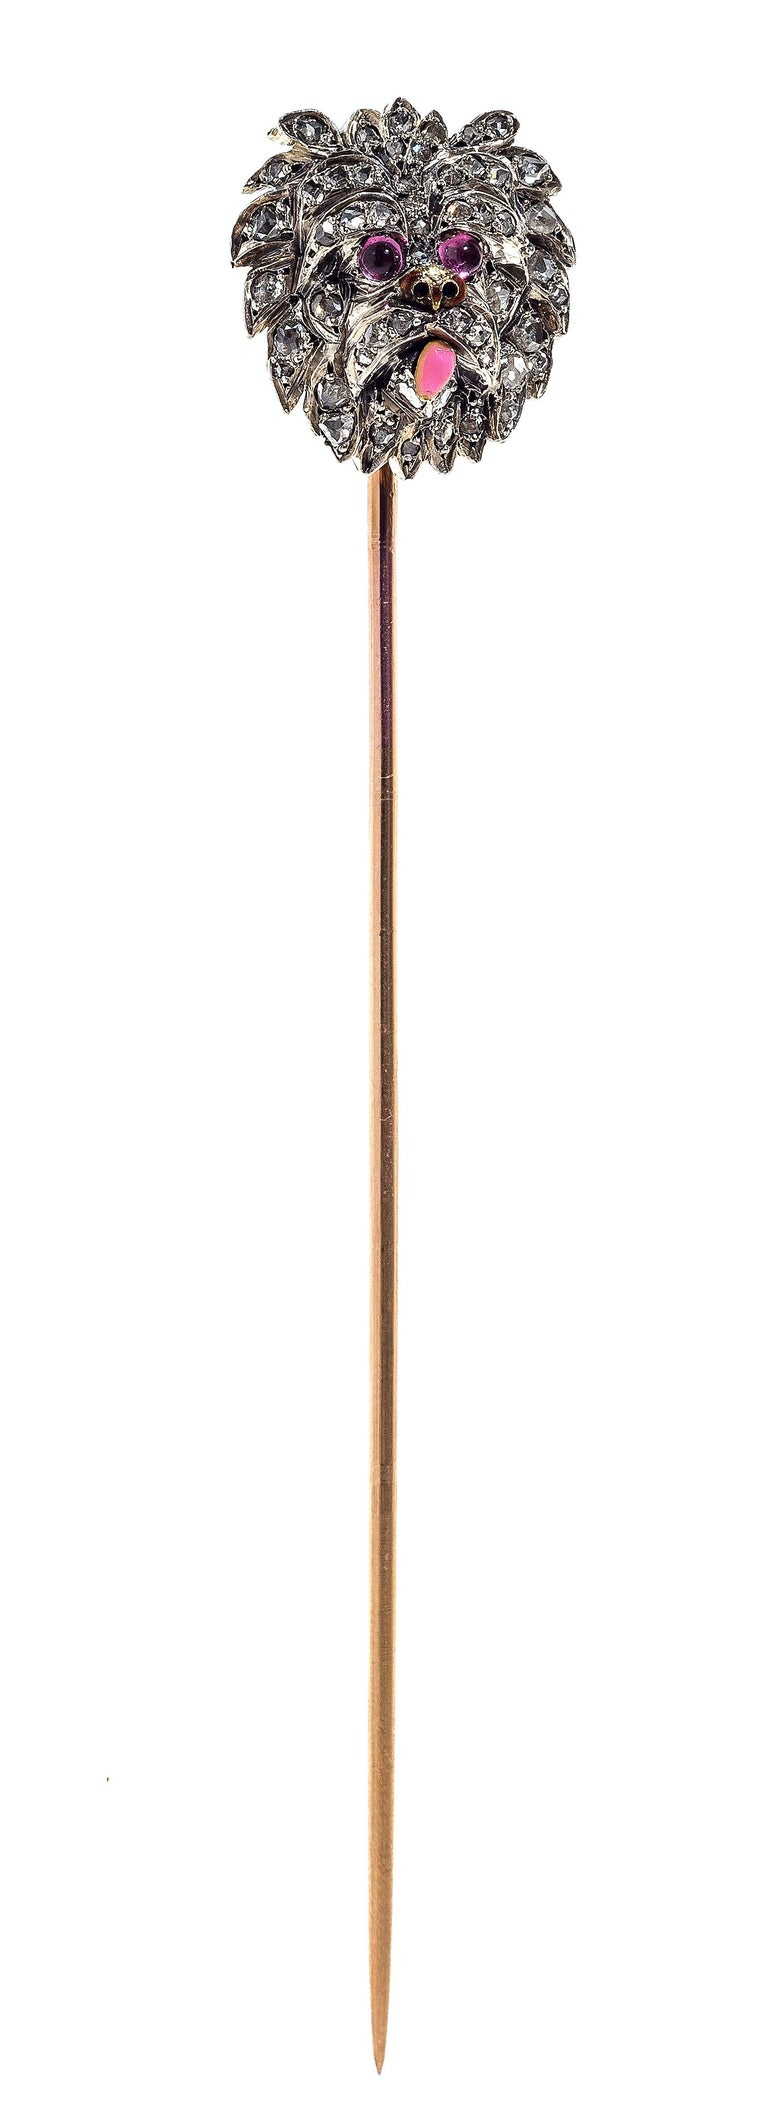 Naturalistically modelled stickpin of a dog of outstanding quality, possibly a Yorckshire Terrier. The lovely animal has with ruby eyes, a golden snout and a pink enamelled tongue. It's head is set with rose diamonds mounted in platinum, the